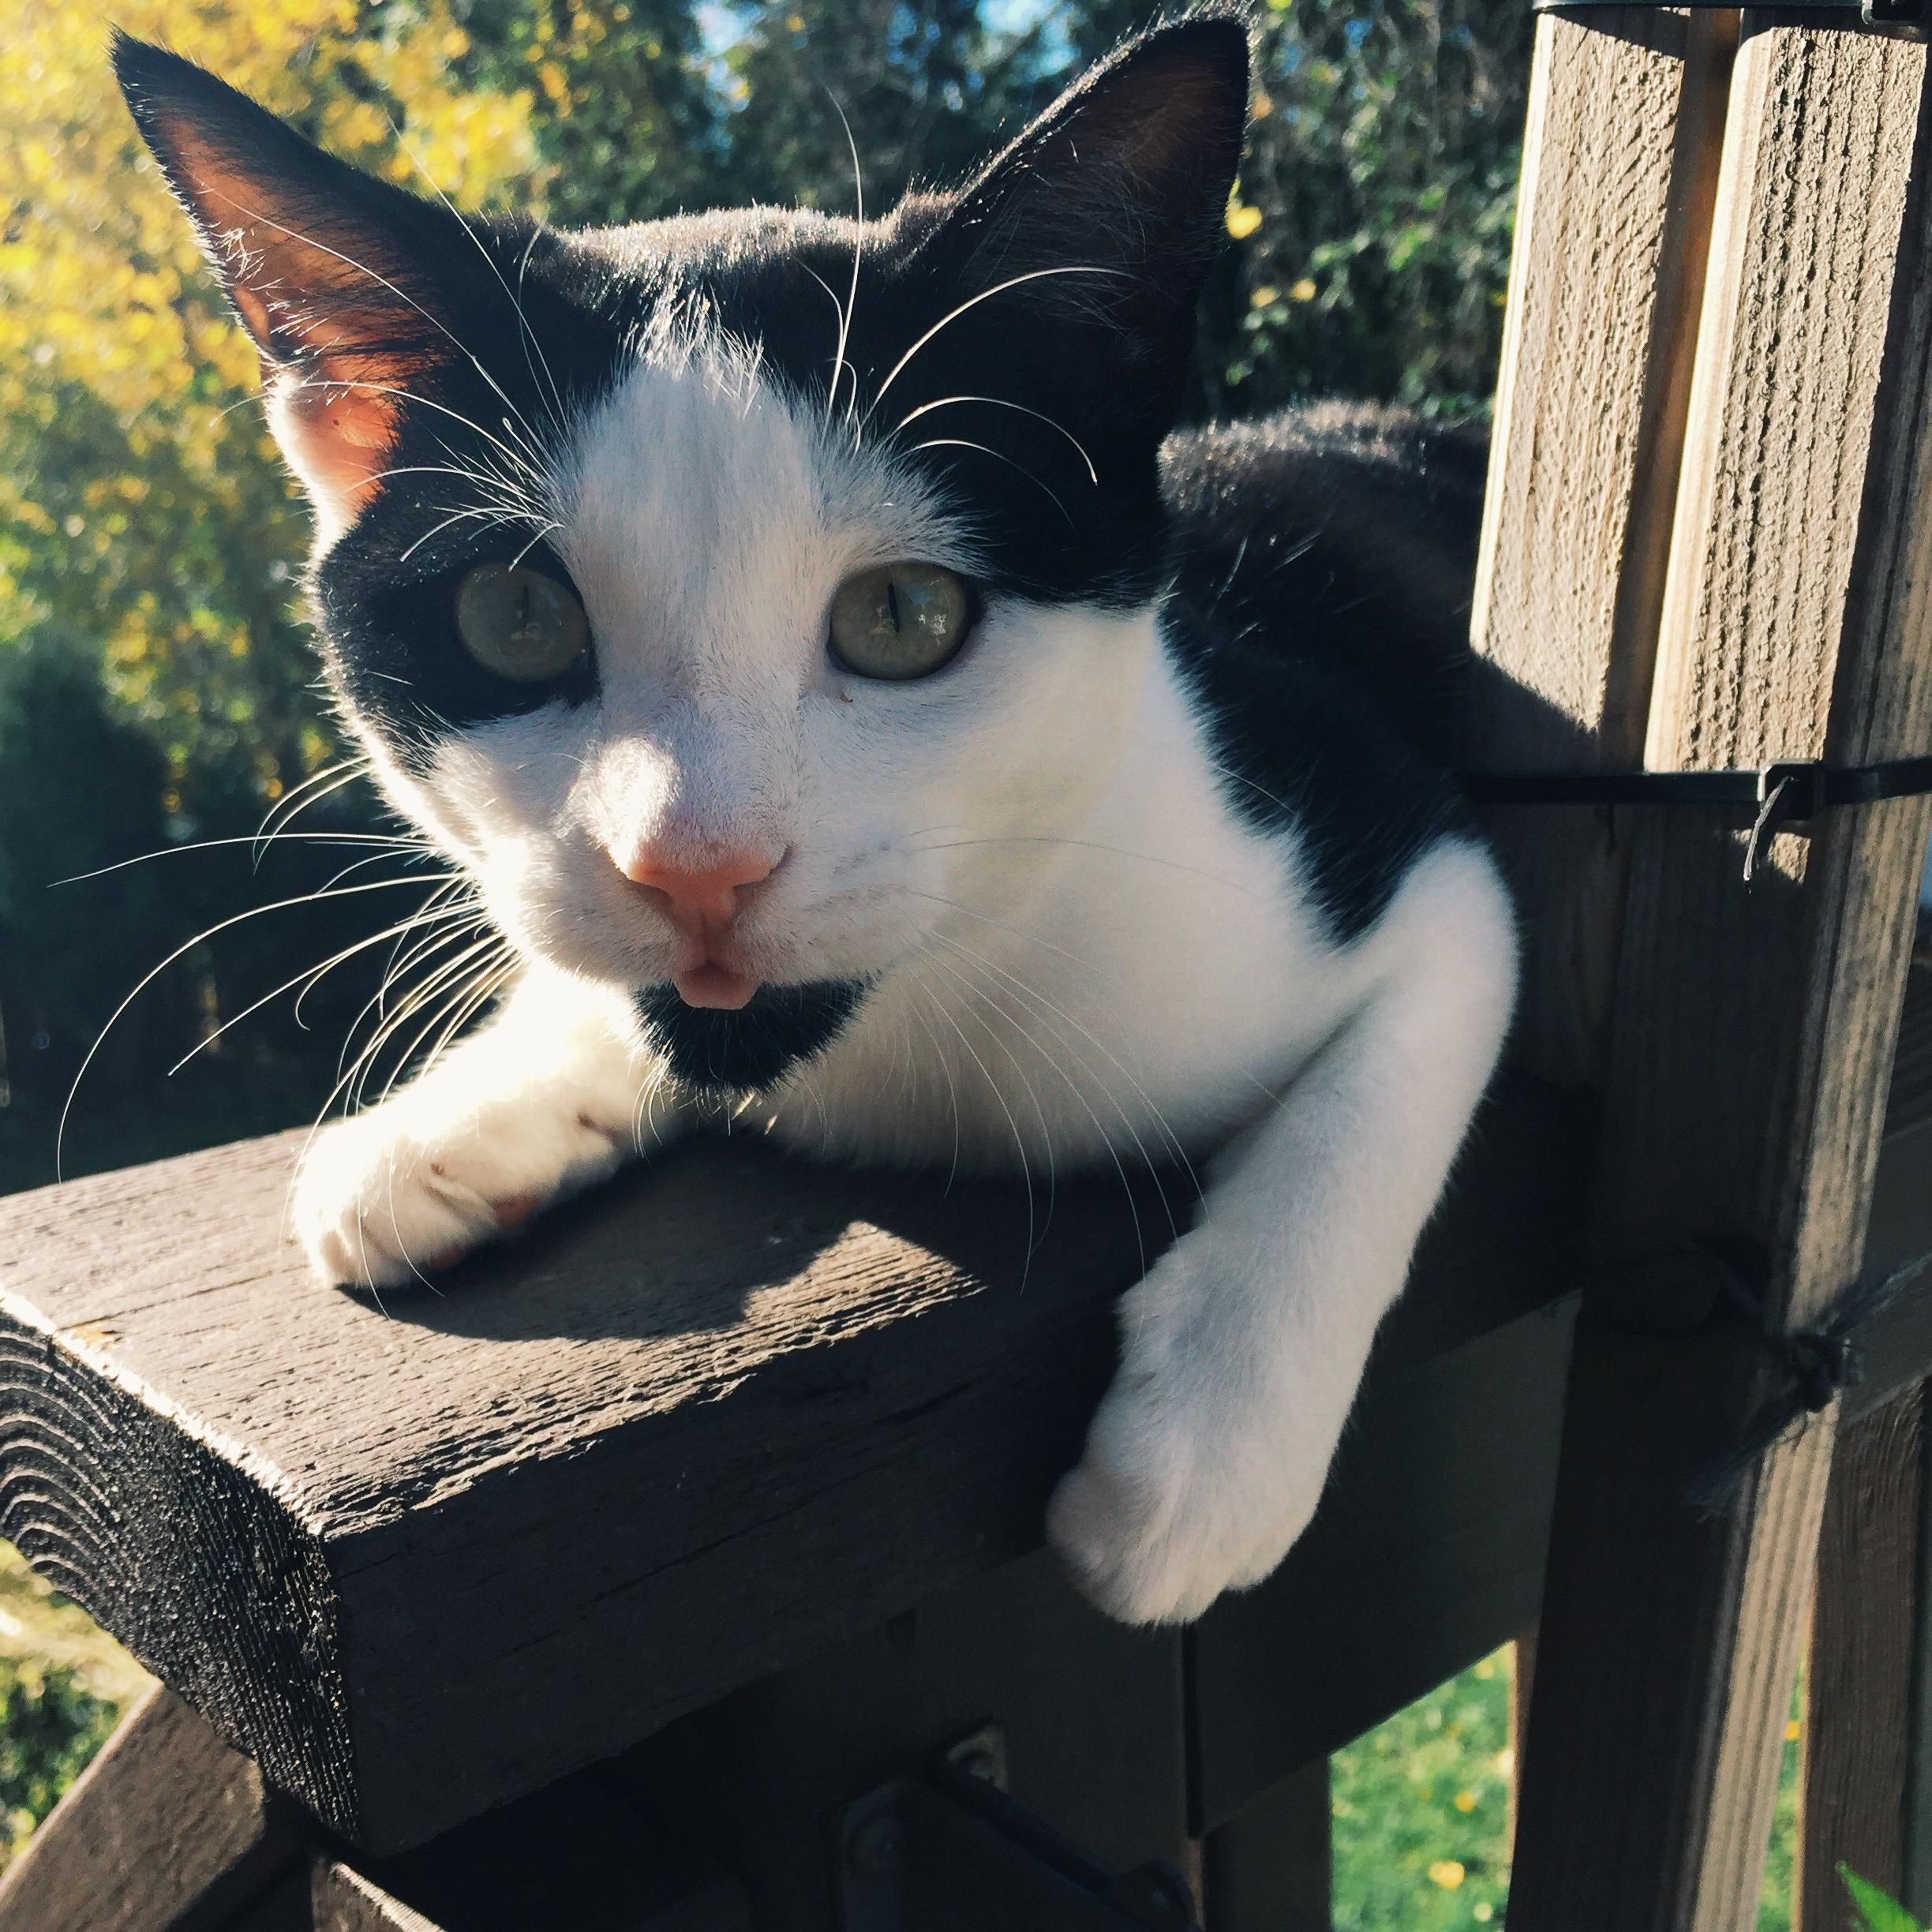 My cat is enjoying the weather! http://ift.tt/2dAyZy7